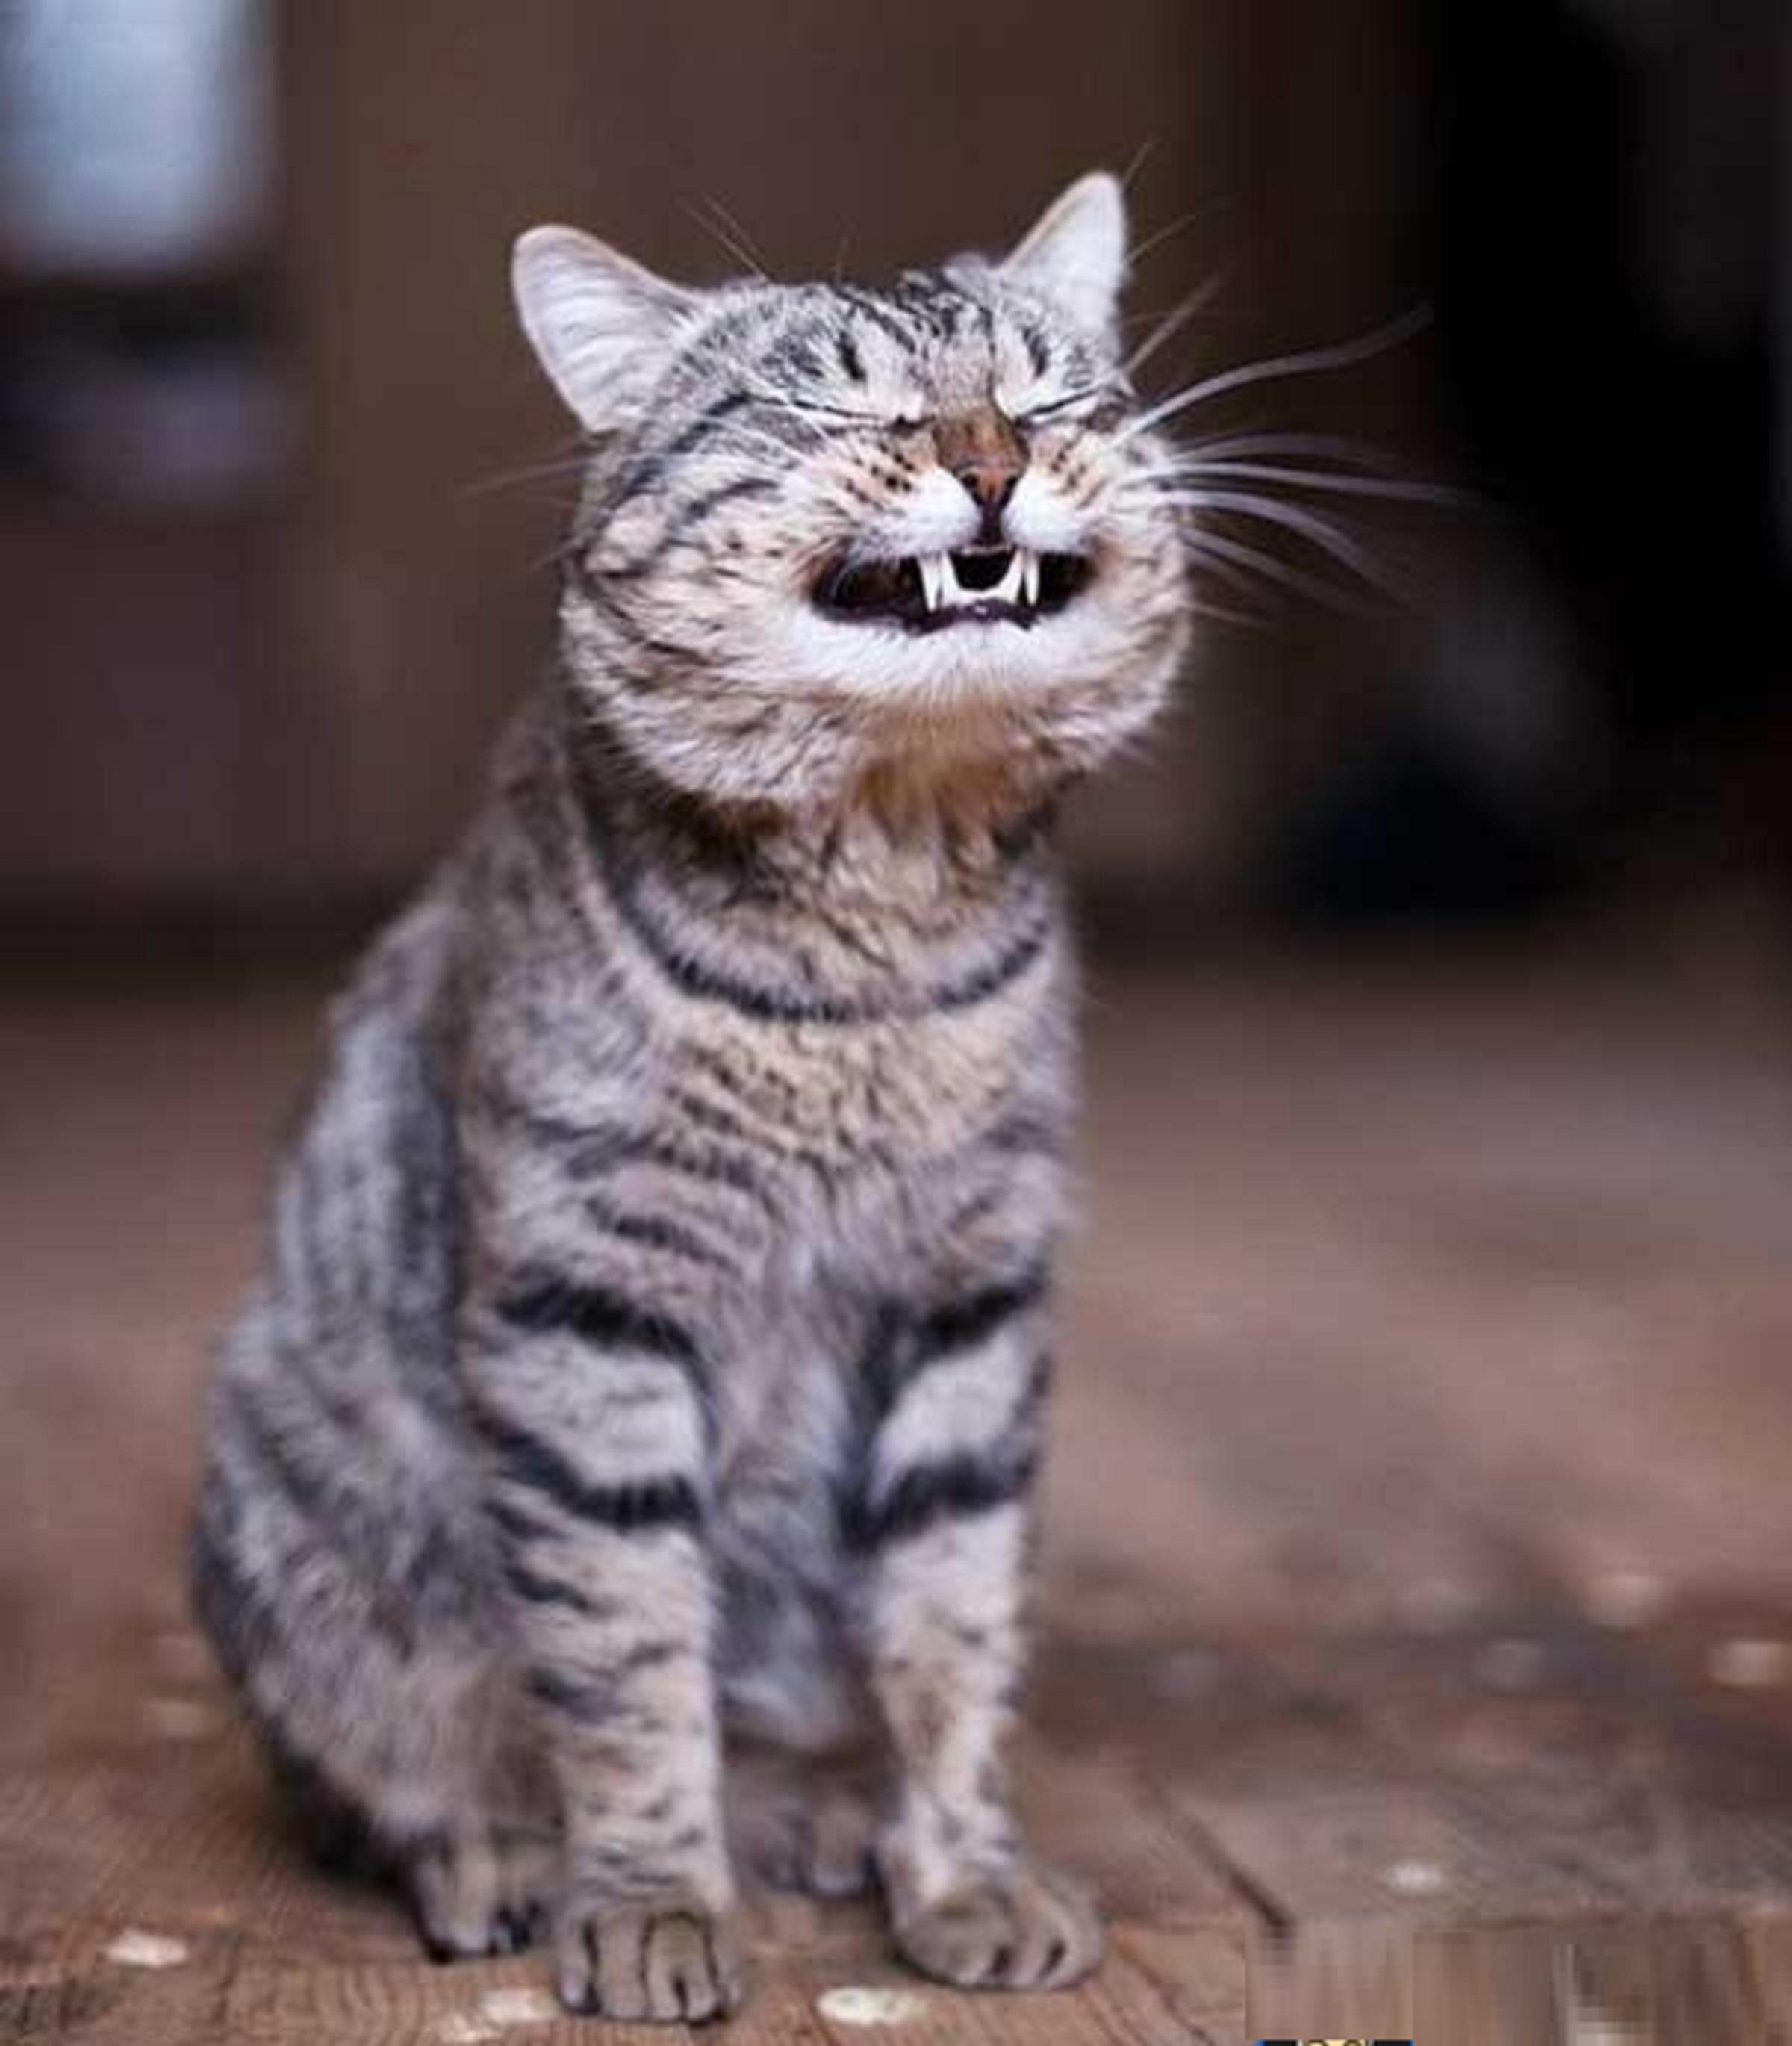 funny-smiling-laughing-cat-pet-4678.jpg